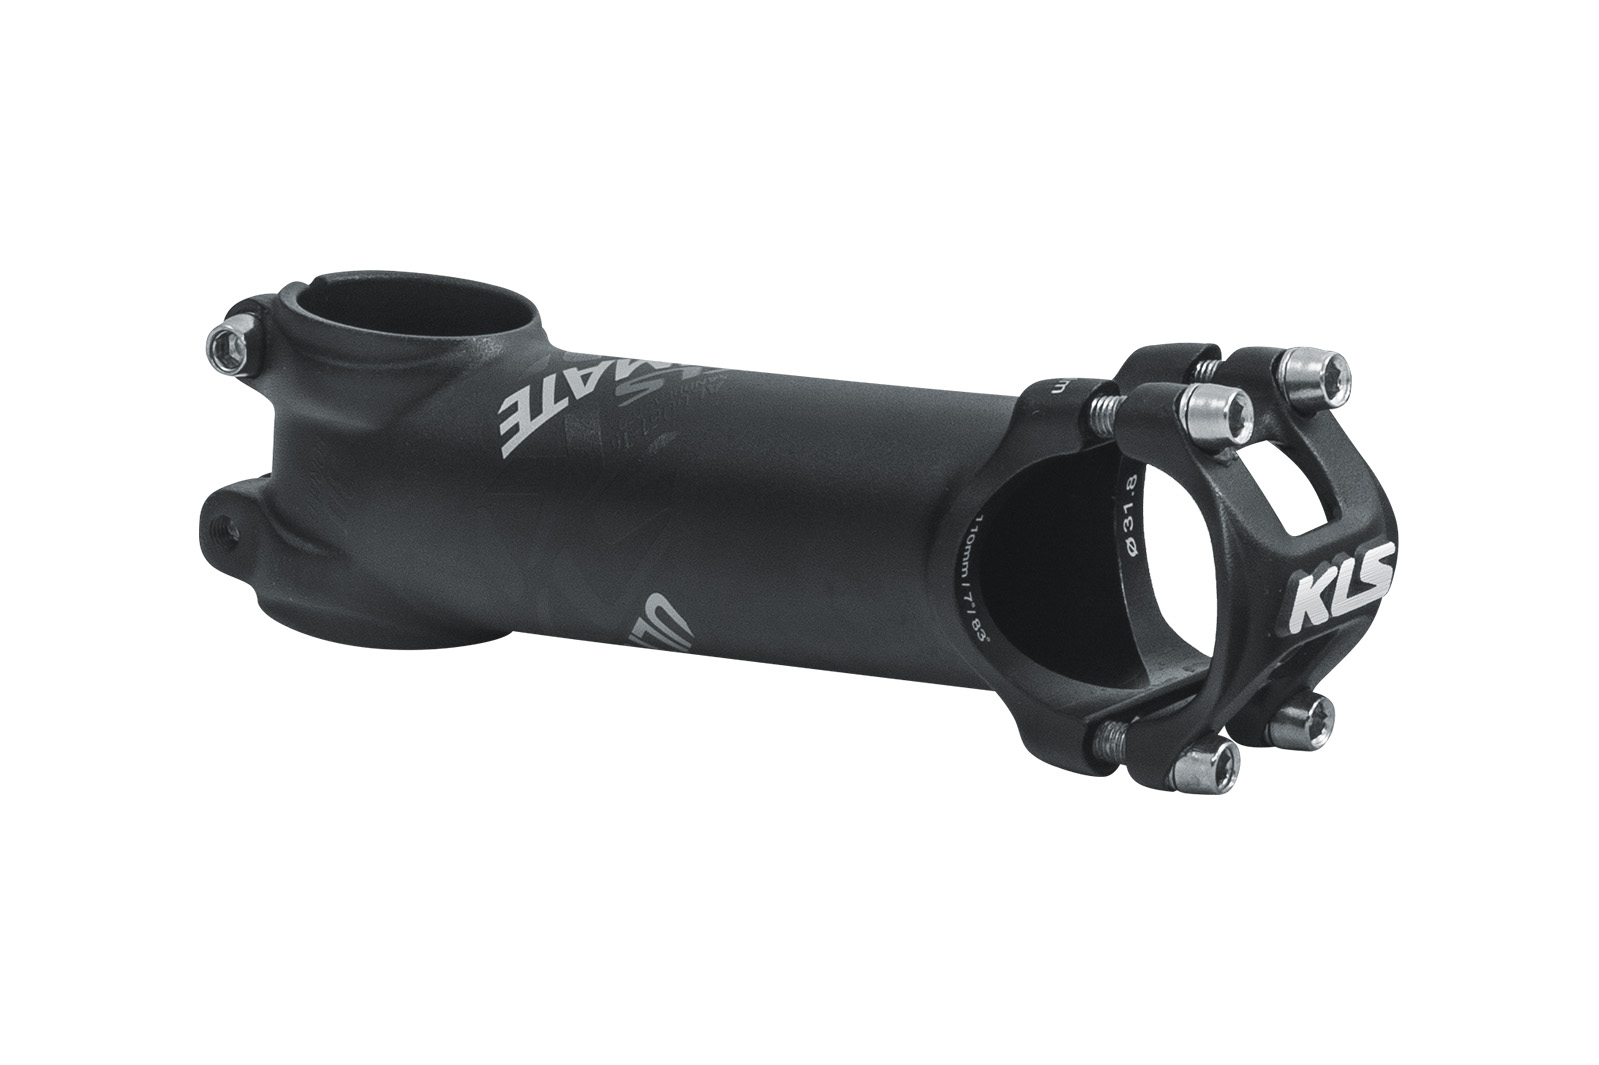 Představec KLS ULTIMATE XC 70 black 017, 130mm